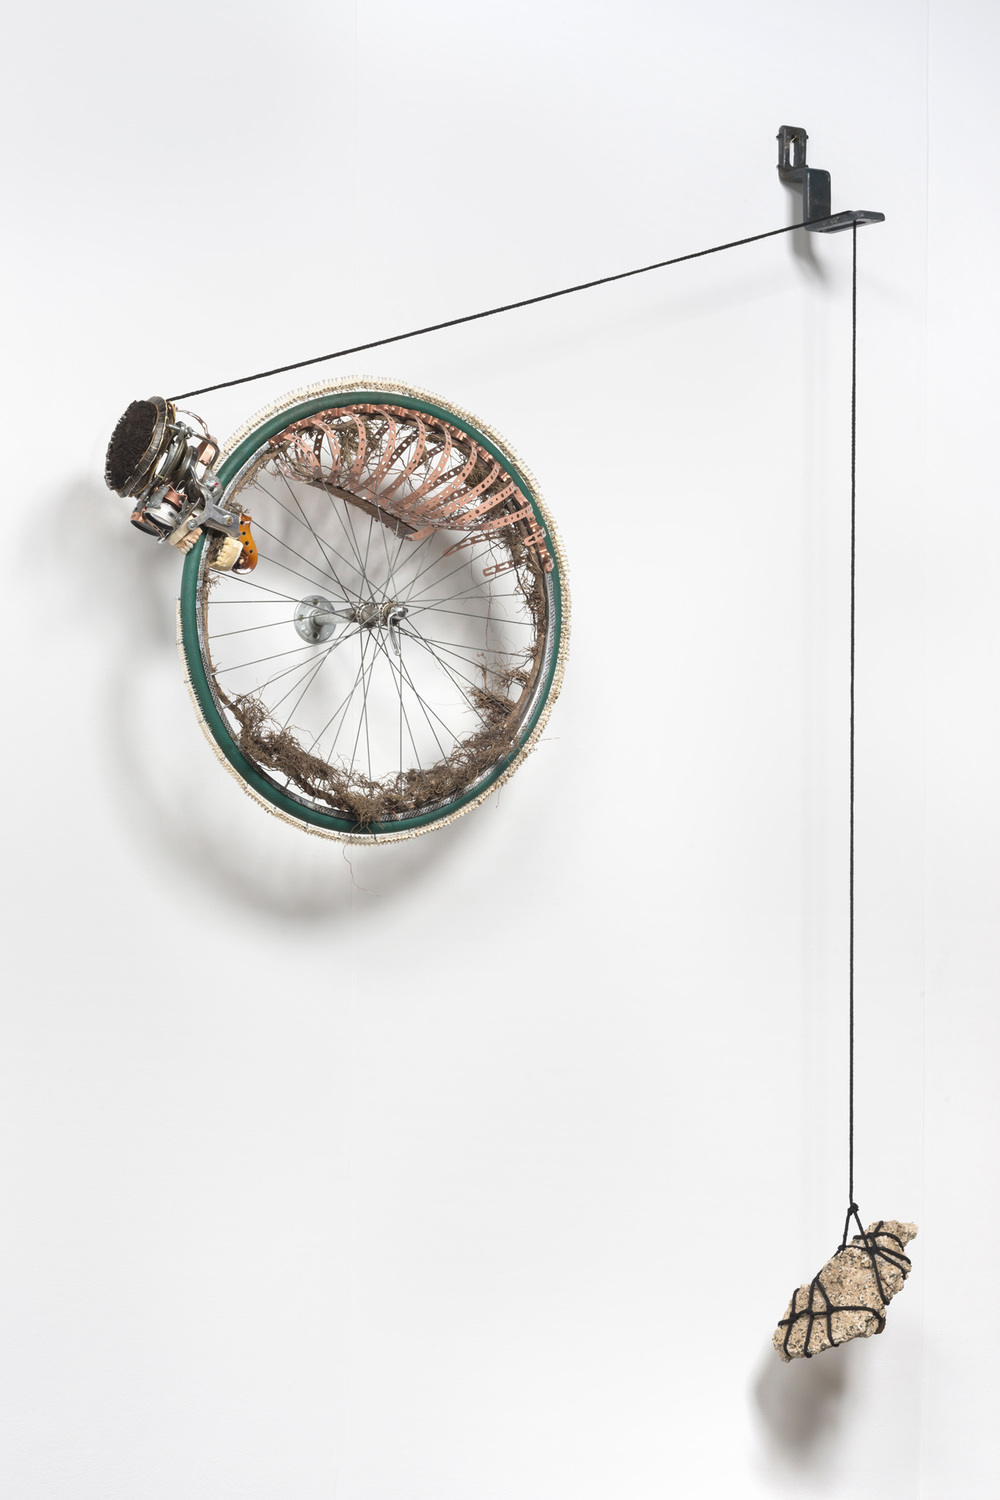 Lorna Williams-Ouroboros-2013-hair, plumbing hardware, violin parts, photography lenses, snake vertebrae, bike wheel, hose, ukulele neck, bike chain, plaster teeth, bike seat, speaker, snake shedding, root, rope, cement-88x60x13.jpg